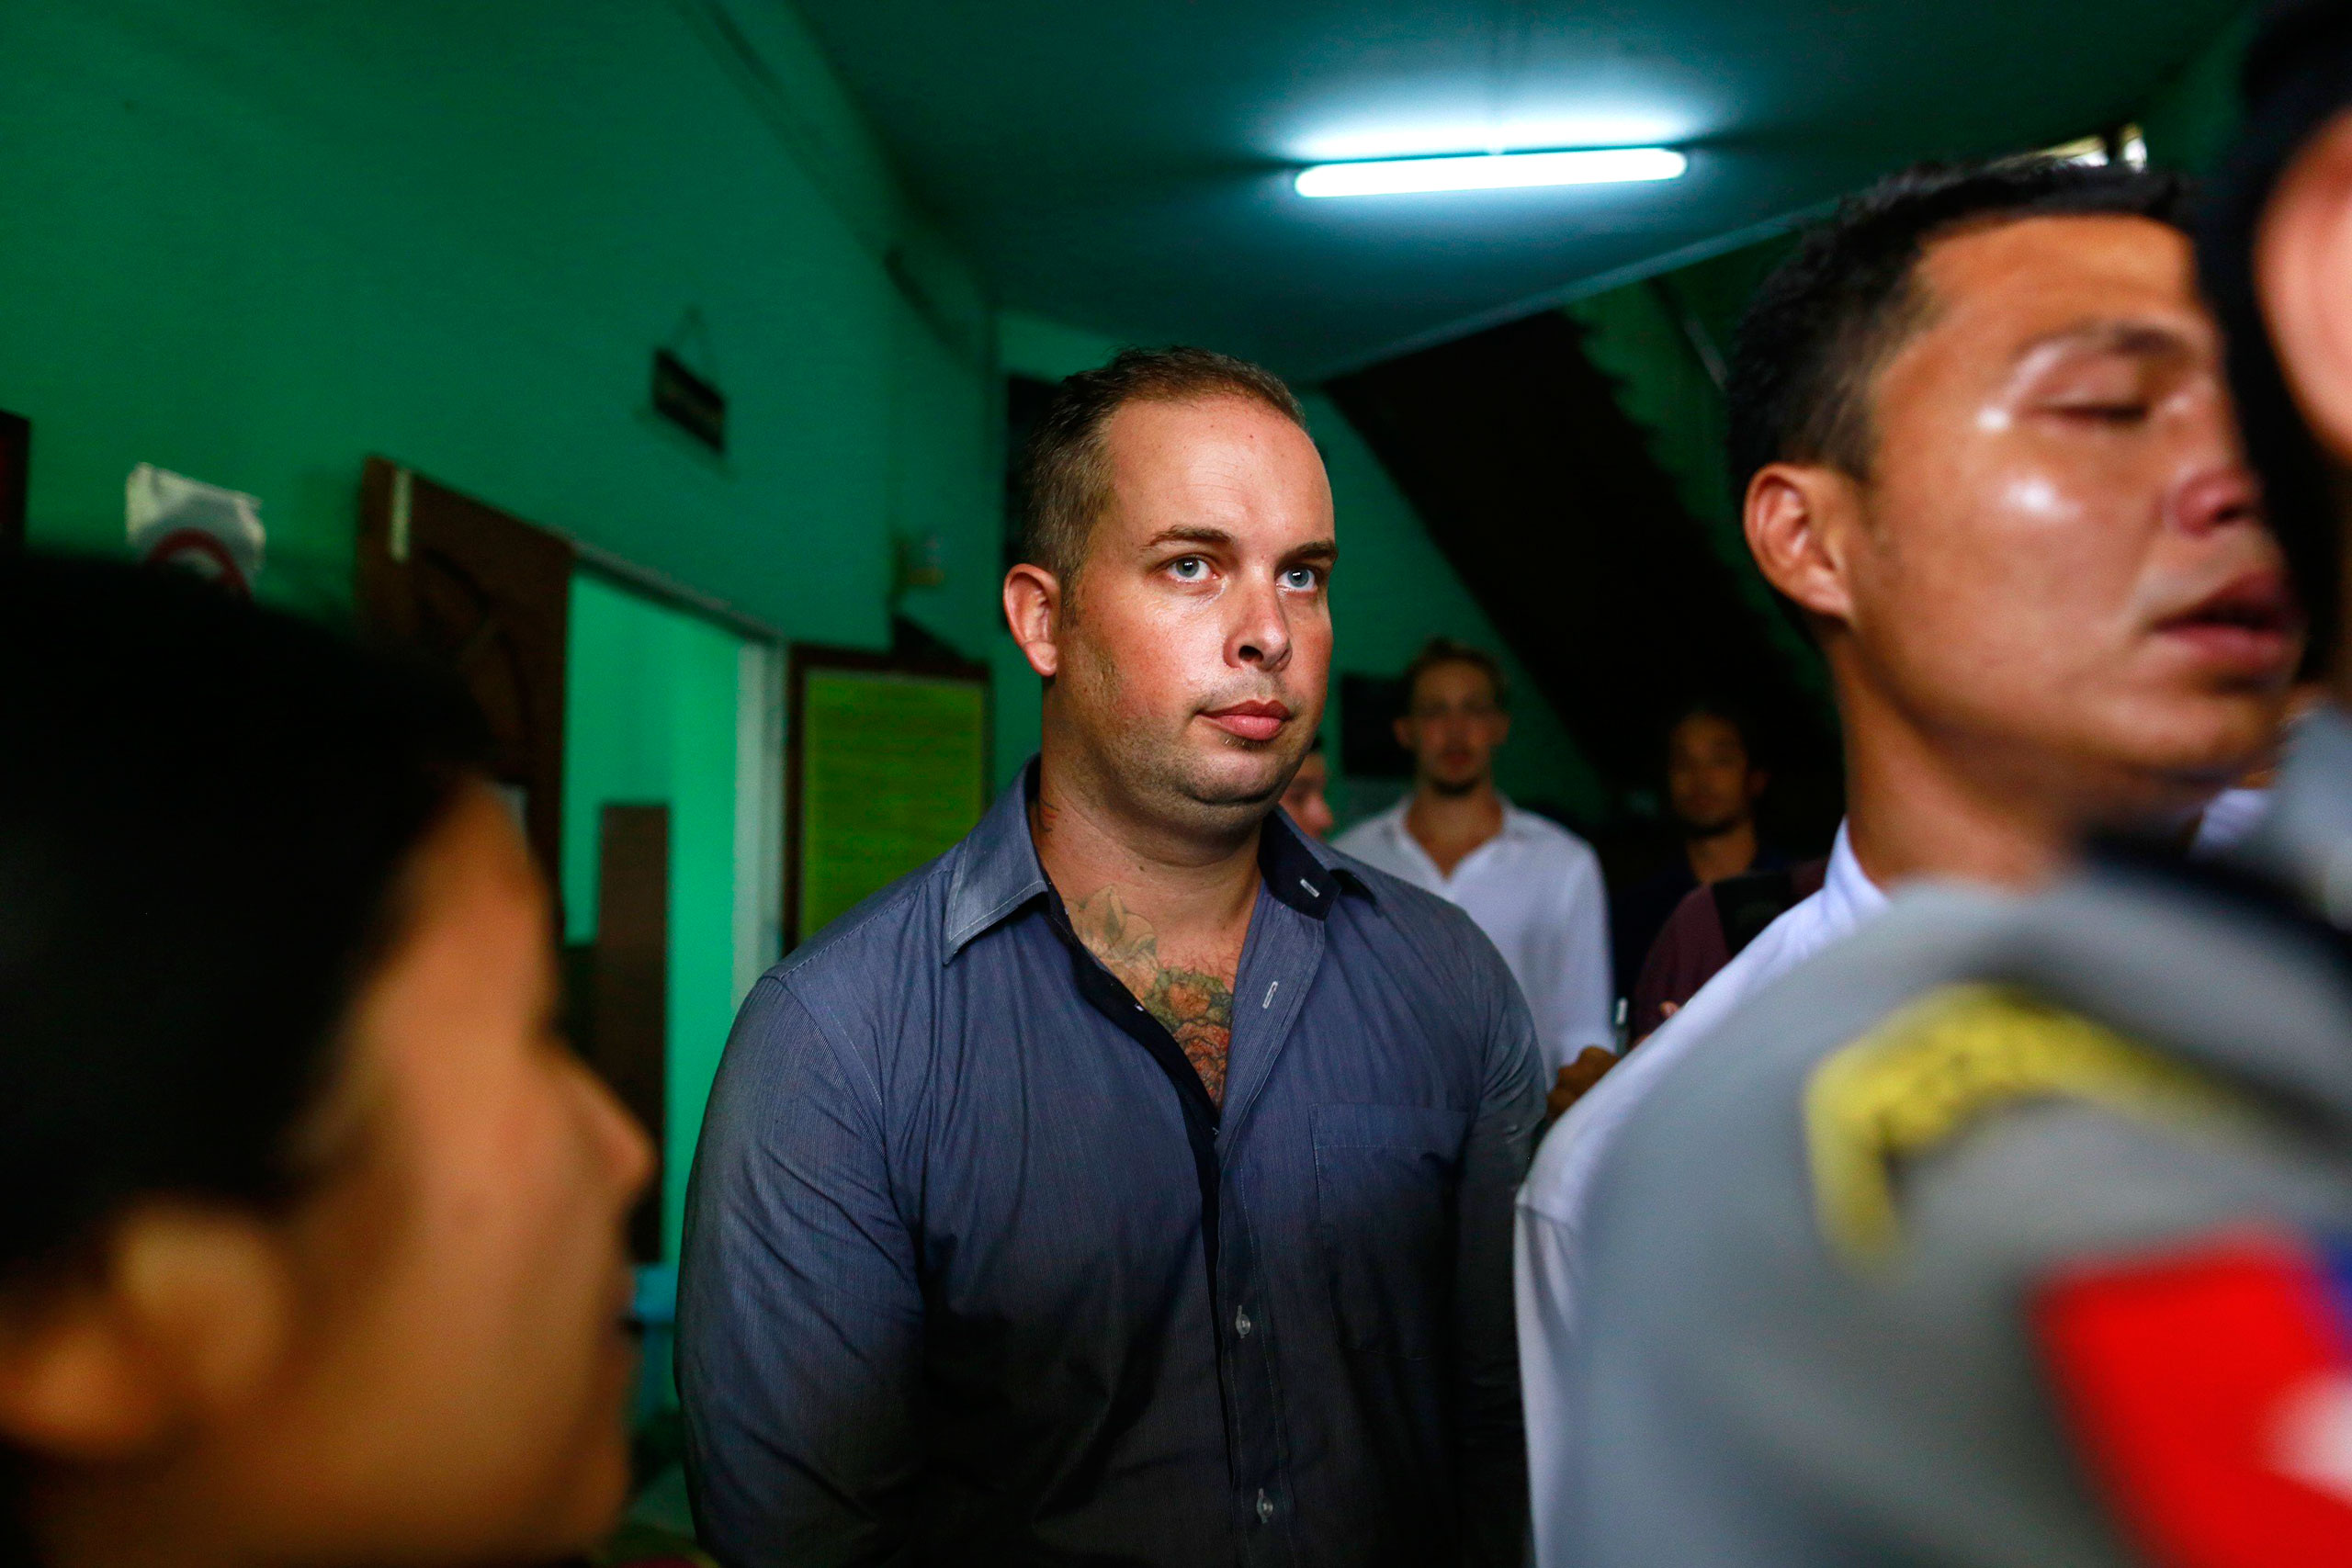 Phil Blackwood, a bar manager from New Zealand, comes out of court after being sentenced to two and half years in prison, at Bahan township court in Yangon on March 17, 2015.